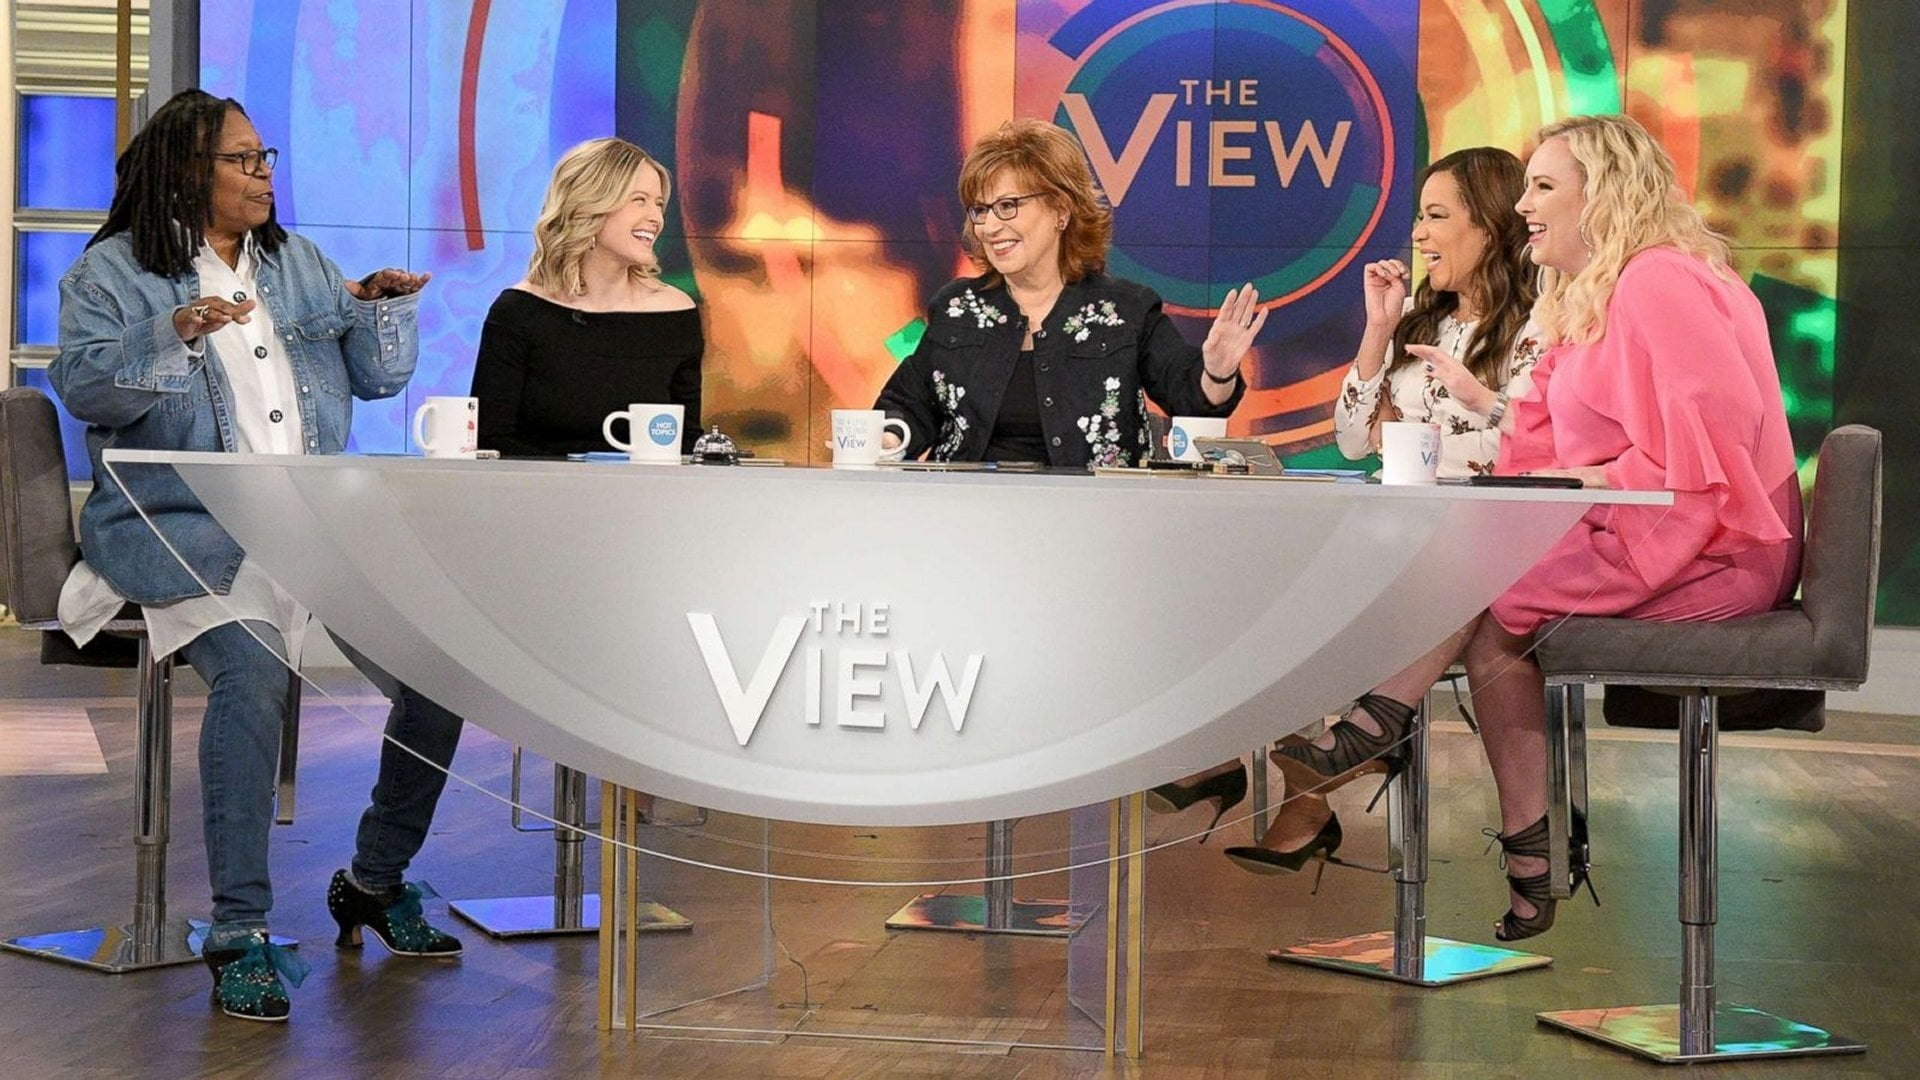 The View - Season 3 Episode 230 : Season 3, Episode 230